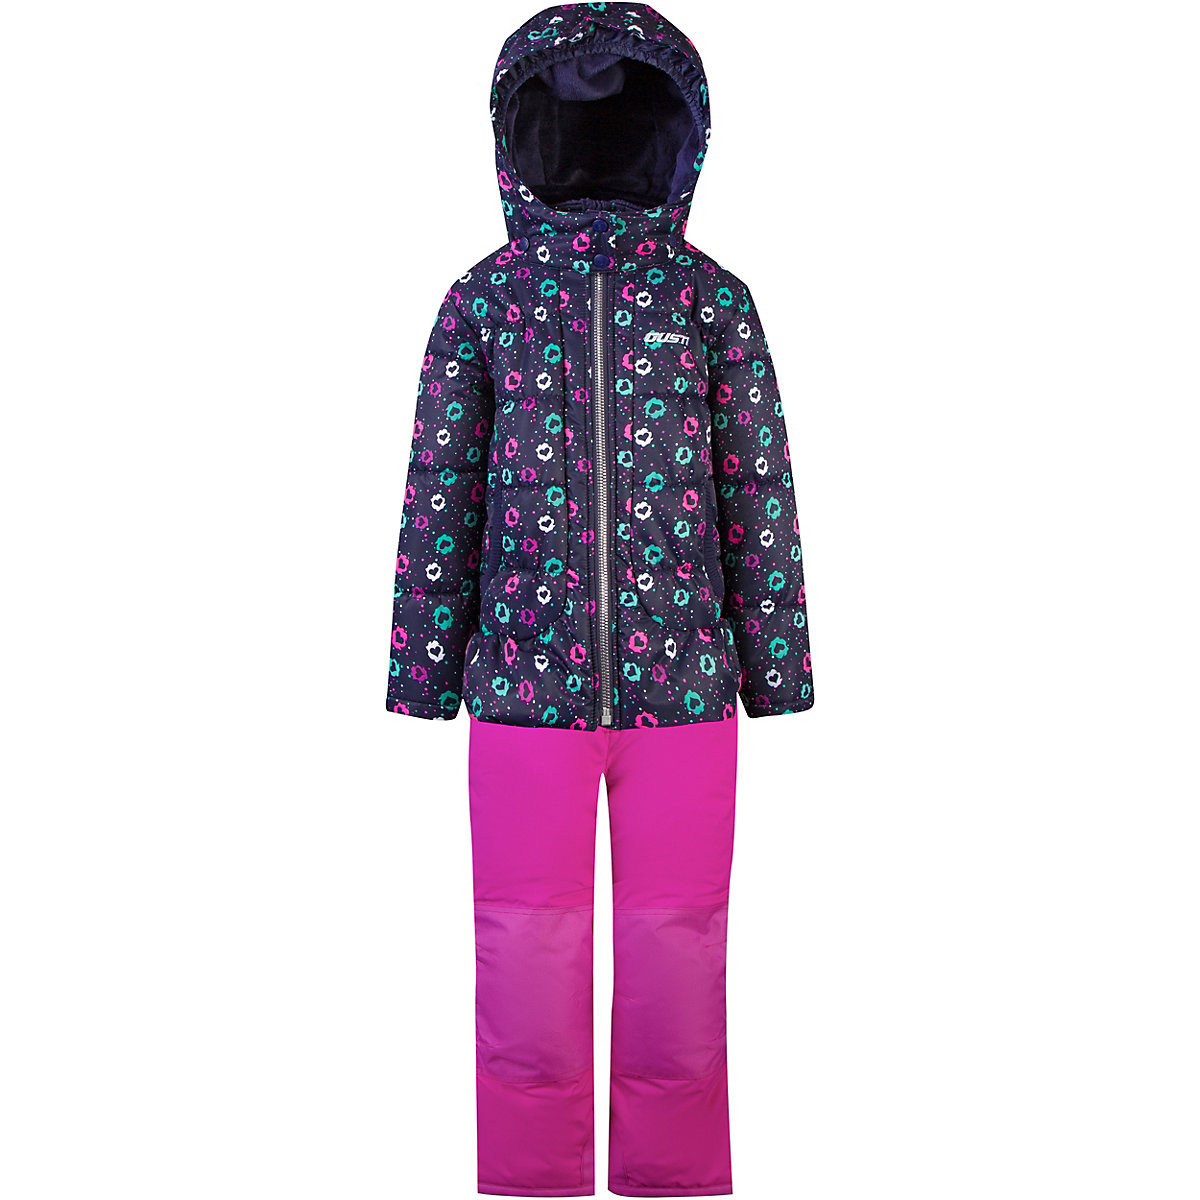 GUSTI Children's Sets 9511931 clothing for girls set dress winter clothes girl kids wear girls clothing sets sports suits for girls clothing children sports wear spring autumn kids tracksuits